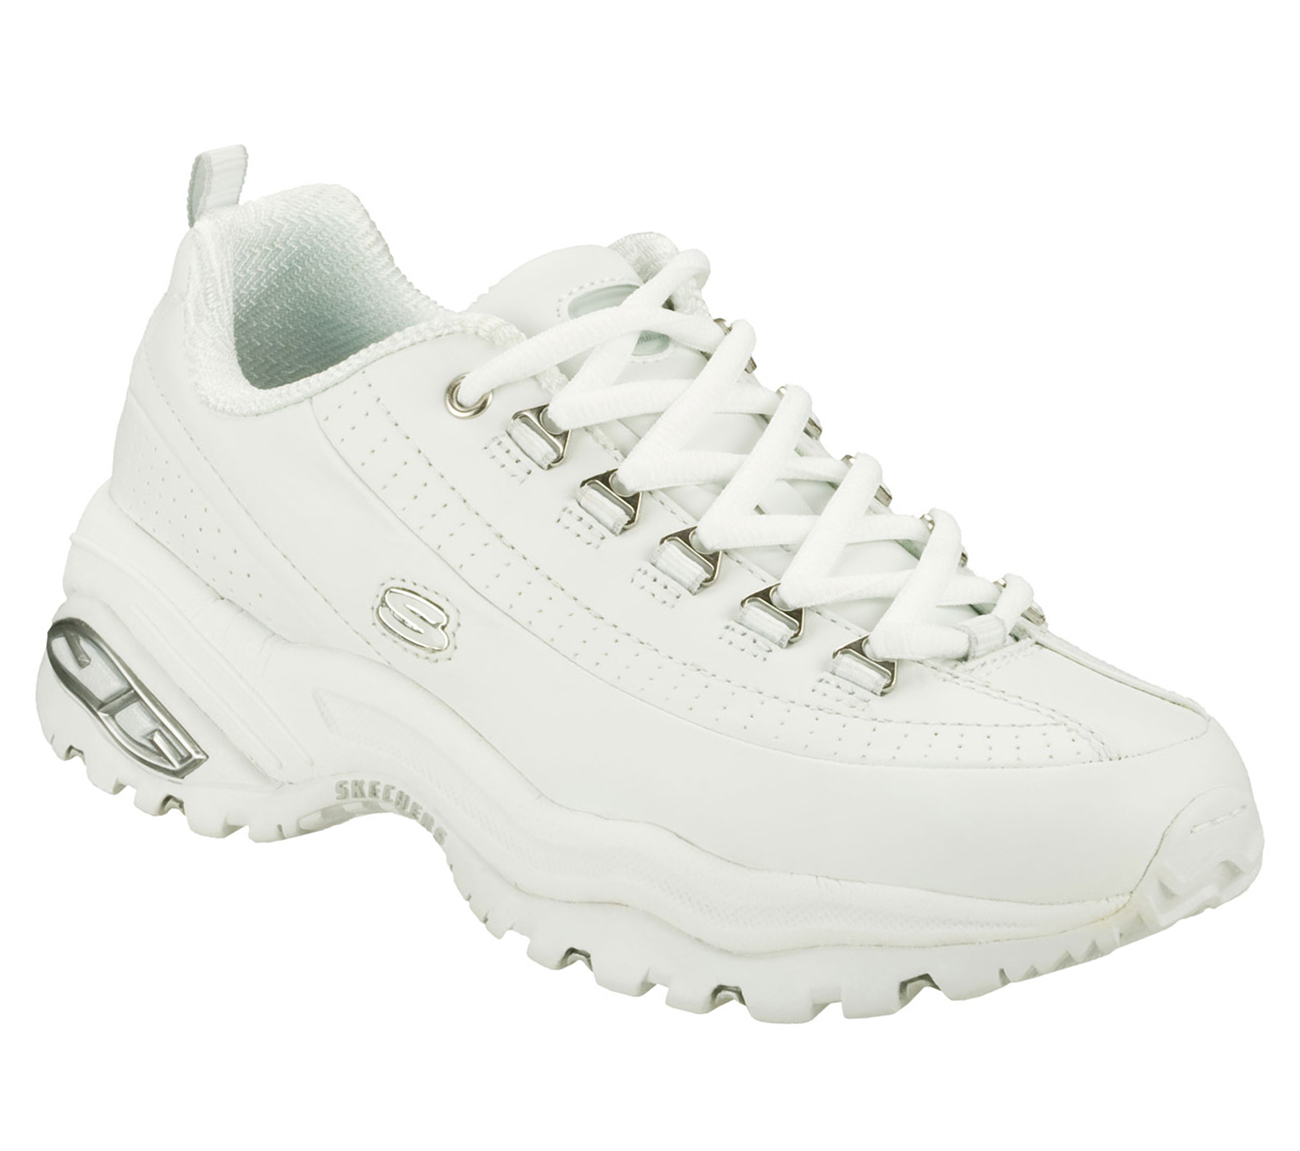 Skechers Premiums Women S Lace Up Casual Shoes White